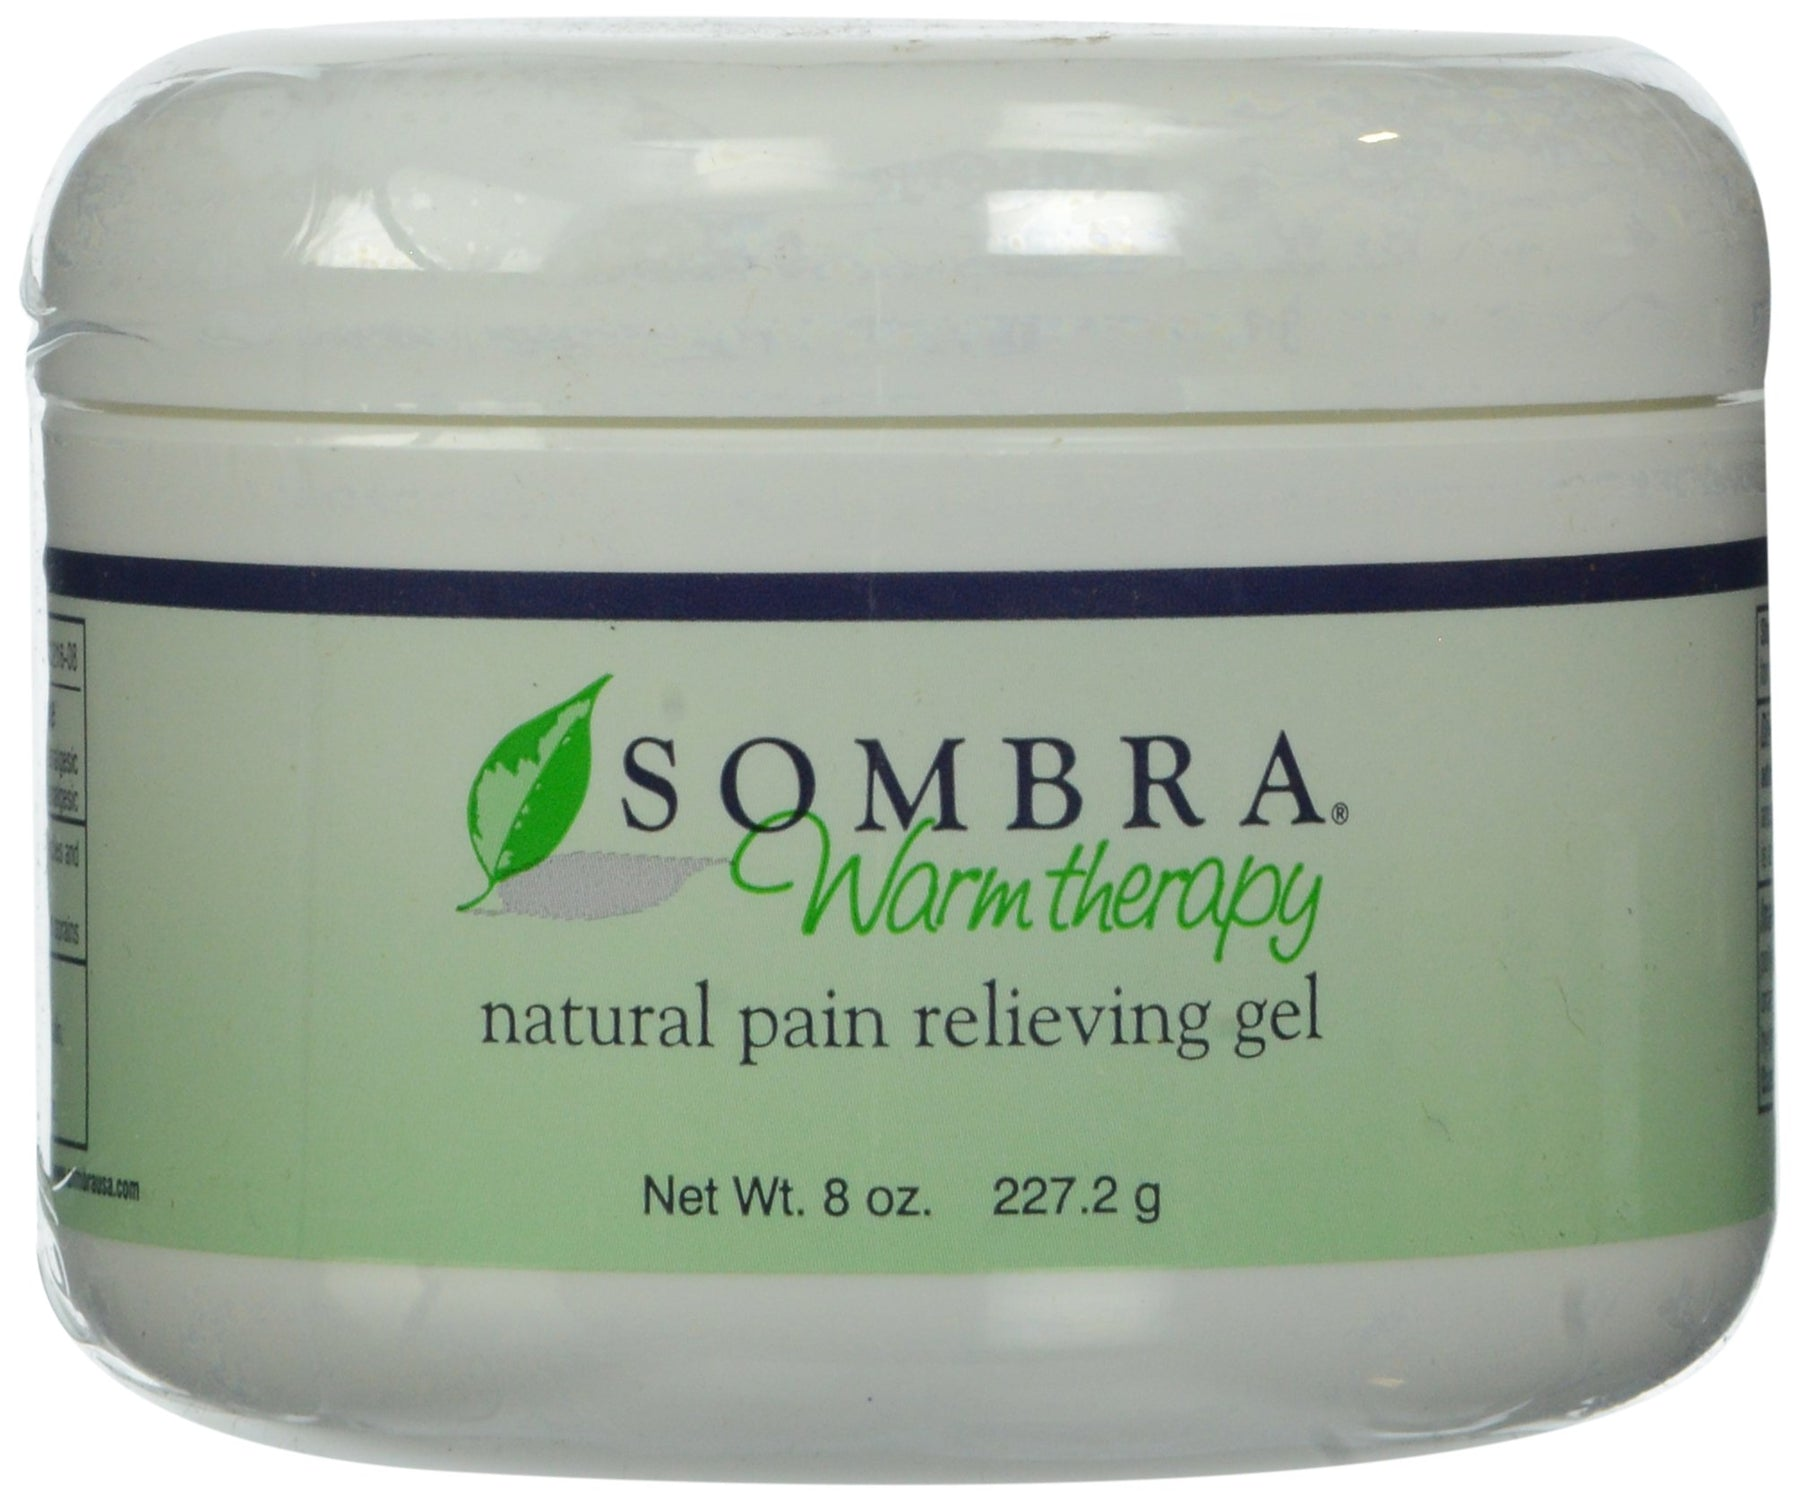 Sombra Warm Therapy Natural Pain Relieving Gel, 8 Ounce